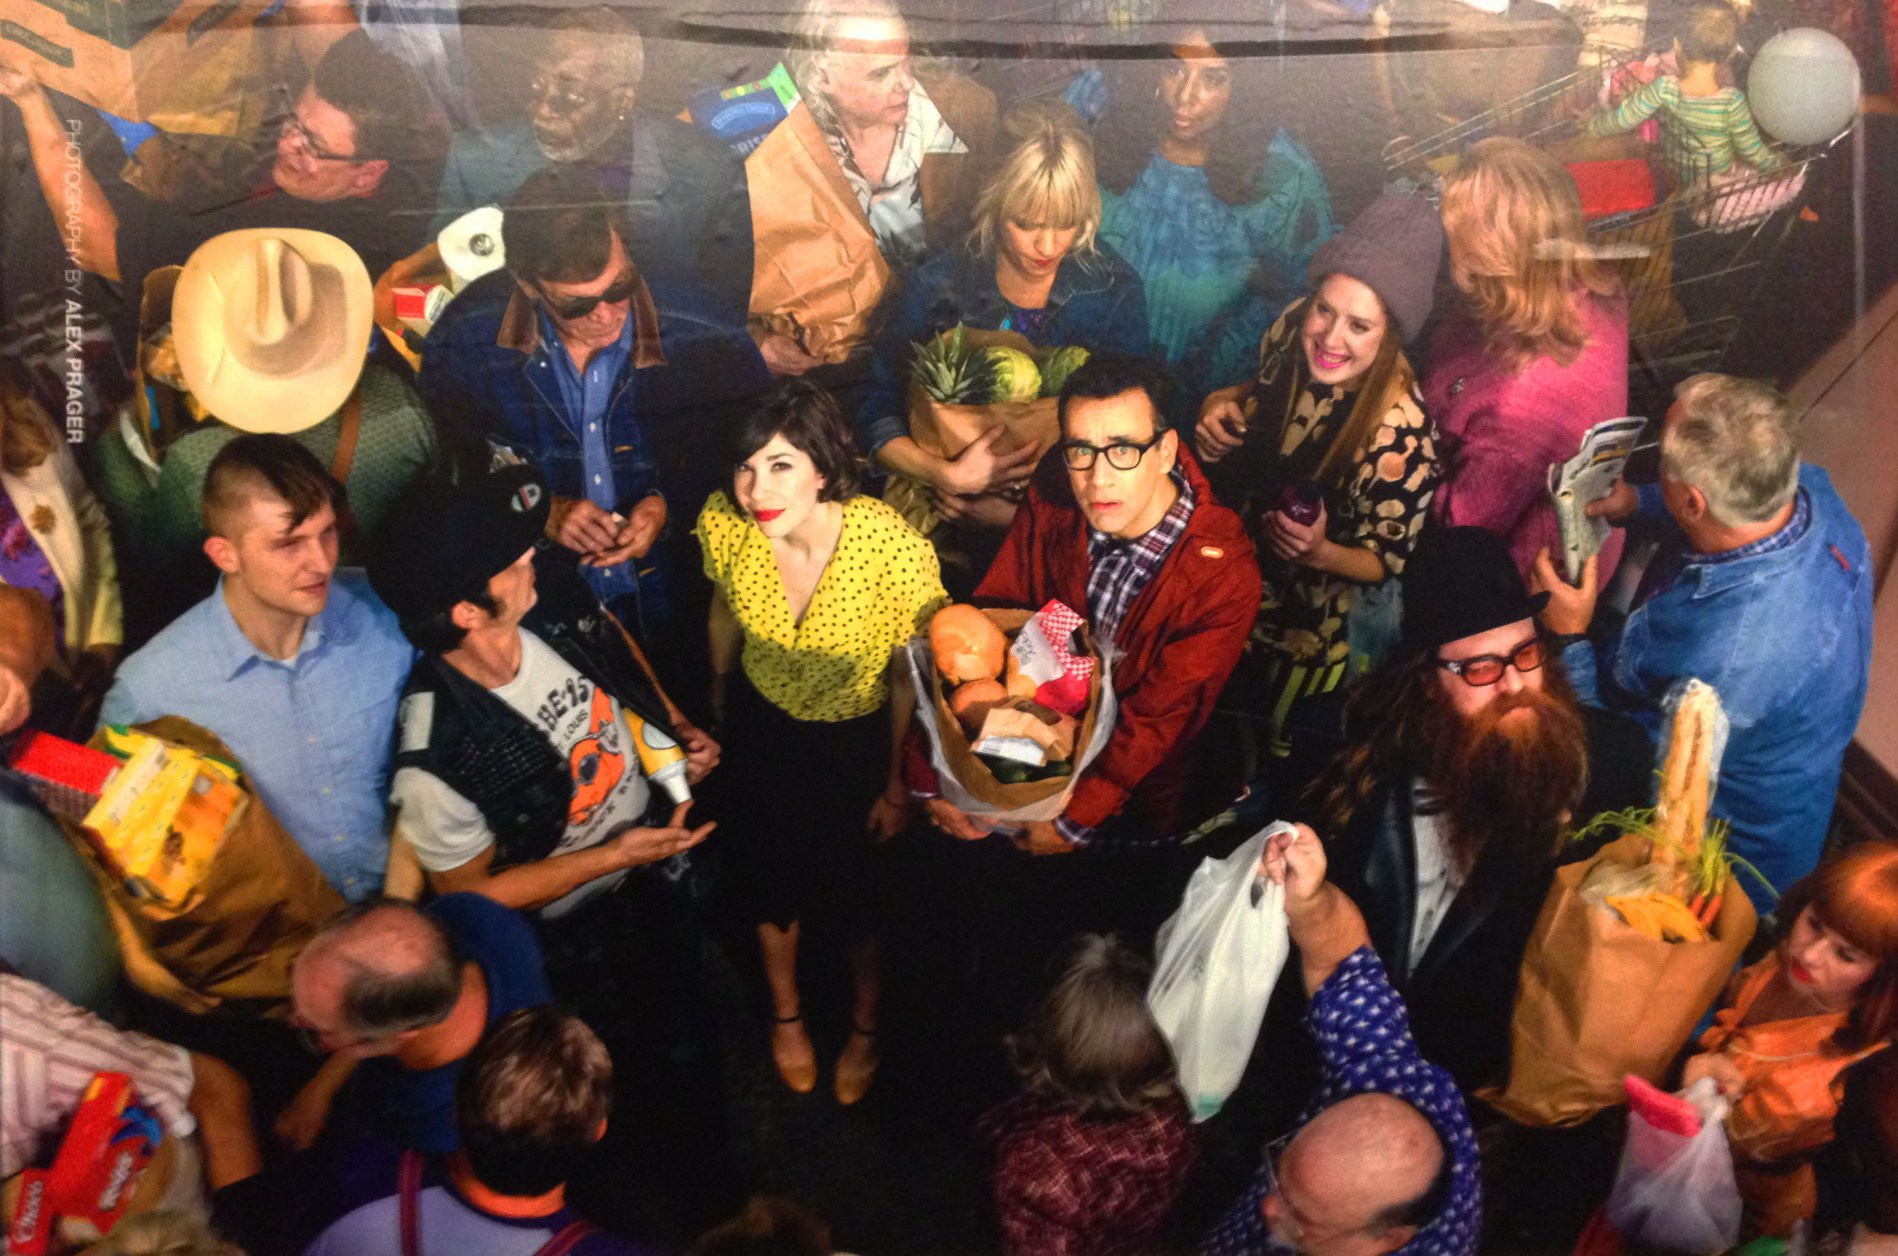 Portlandia subway advertisement, Photographed by Alex Prager, 2014